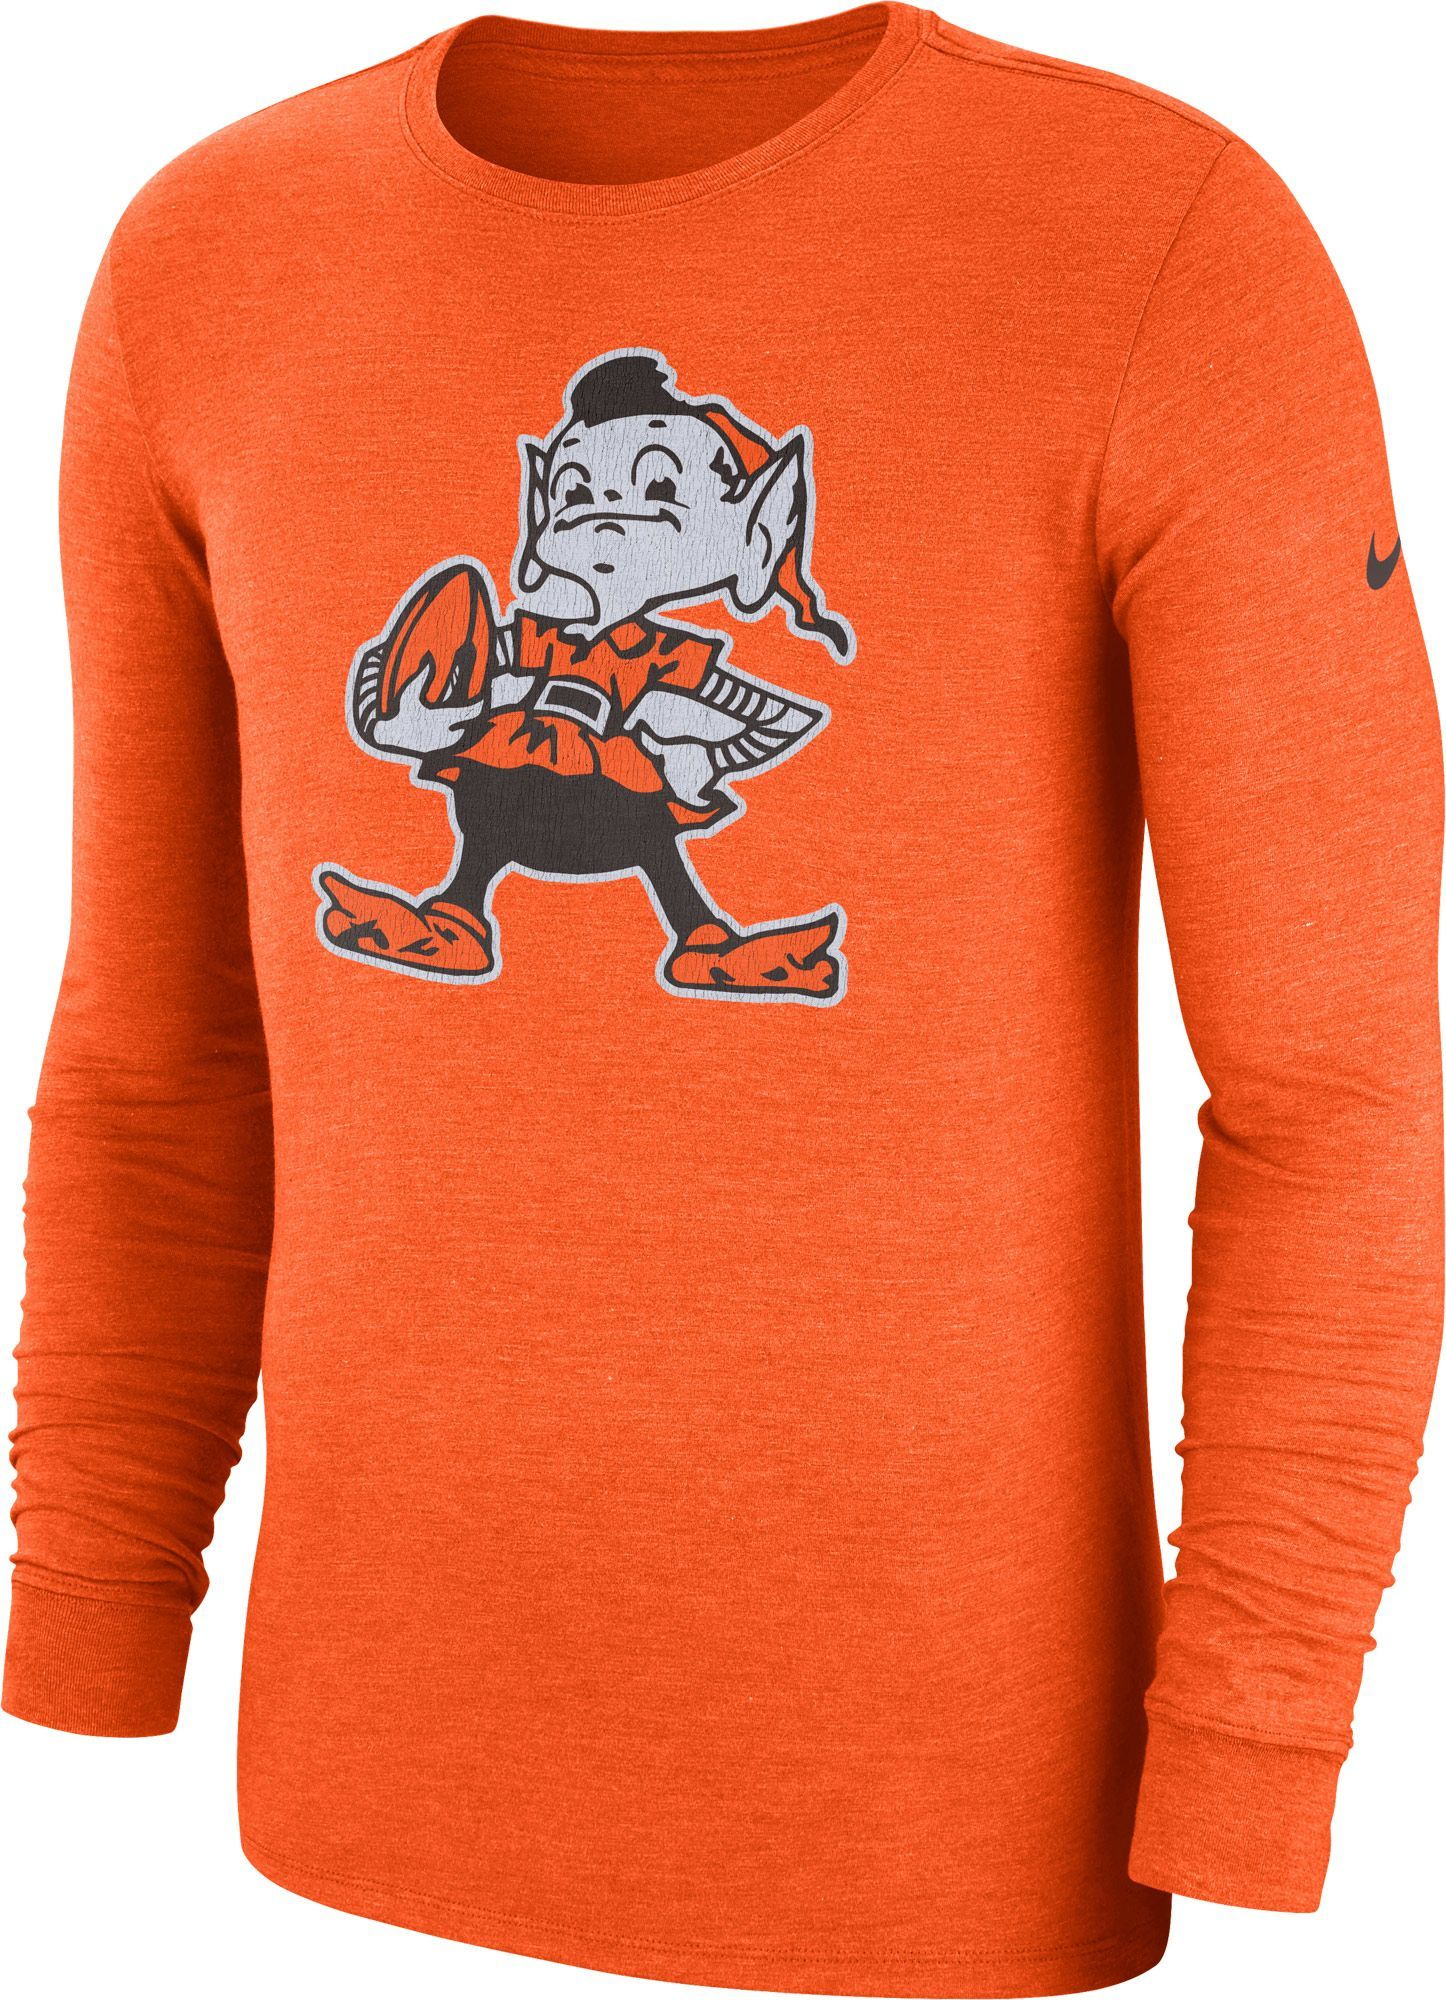 Nike Men s Cleveland Tri-Blend Historic Crackle Orange Long Sleeve Shirt 62b7db2c5